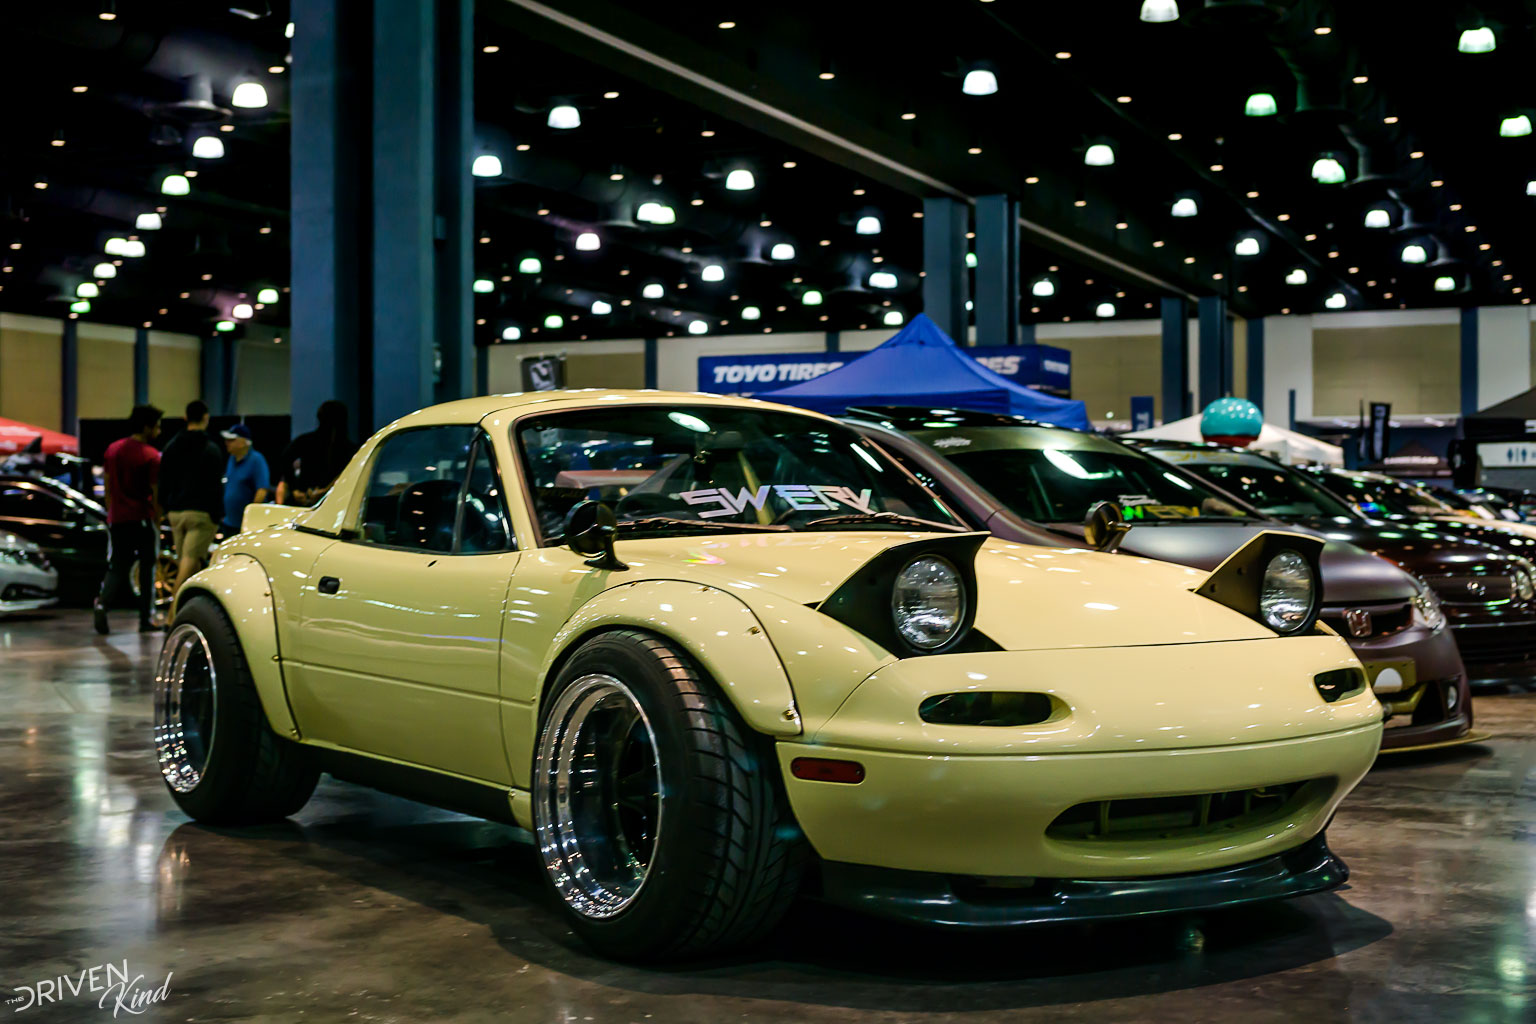 Mazda Miata widebody STANCENATION FLORIDA PALM BEACH CONVENTION CENTER 2017 Pt. 2 The Driven Kind Coverage